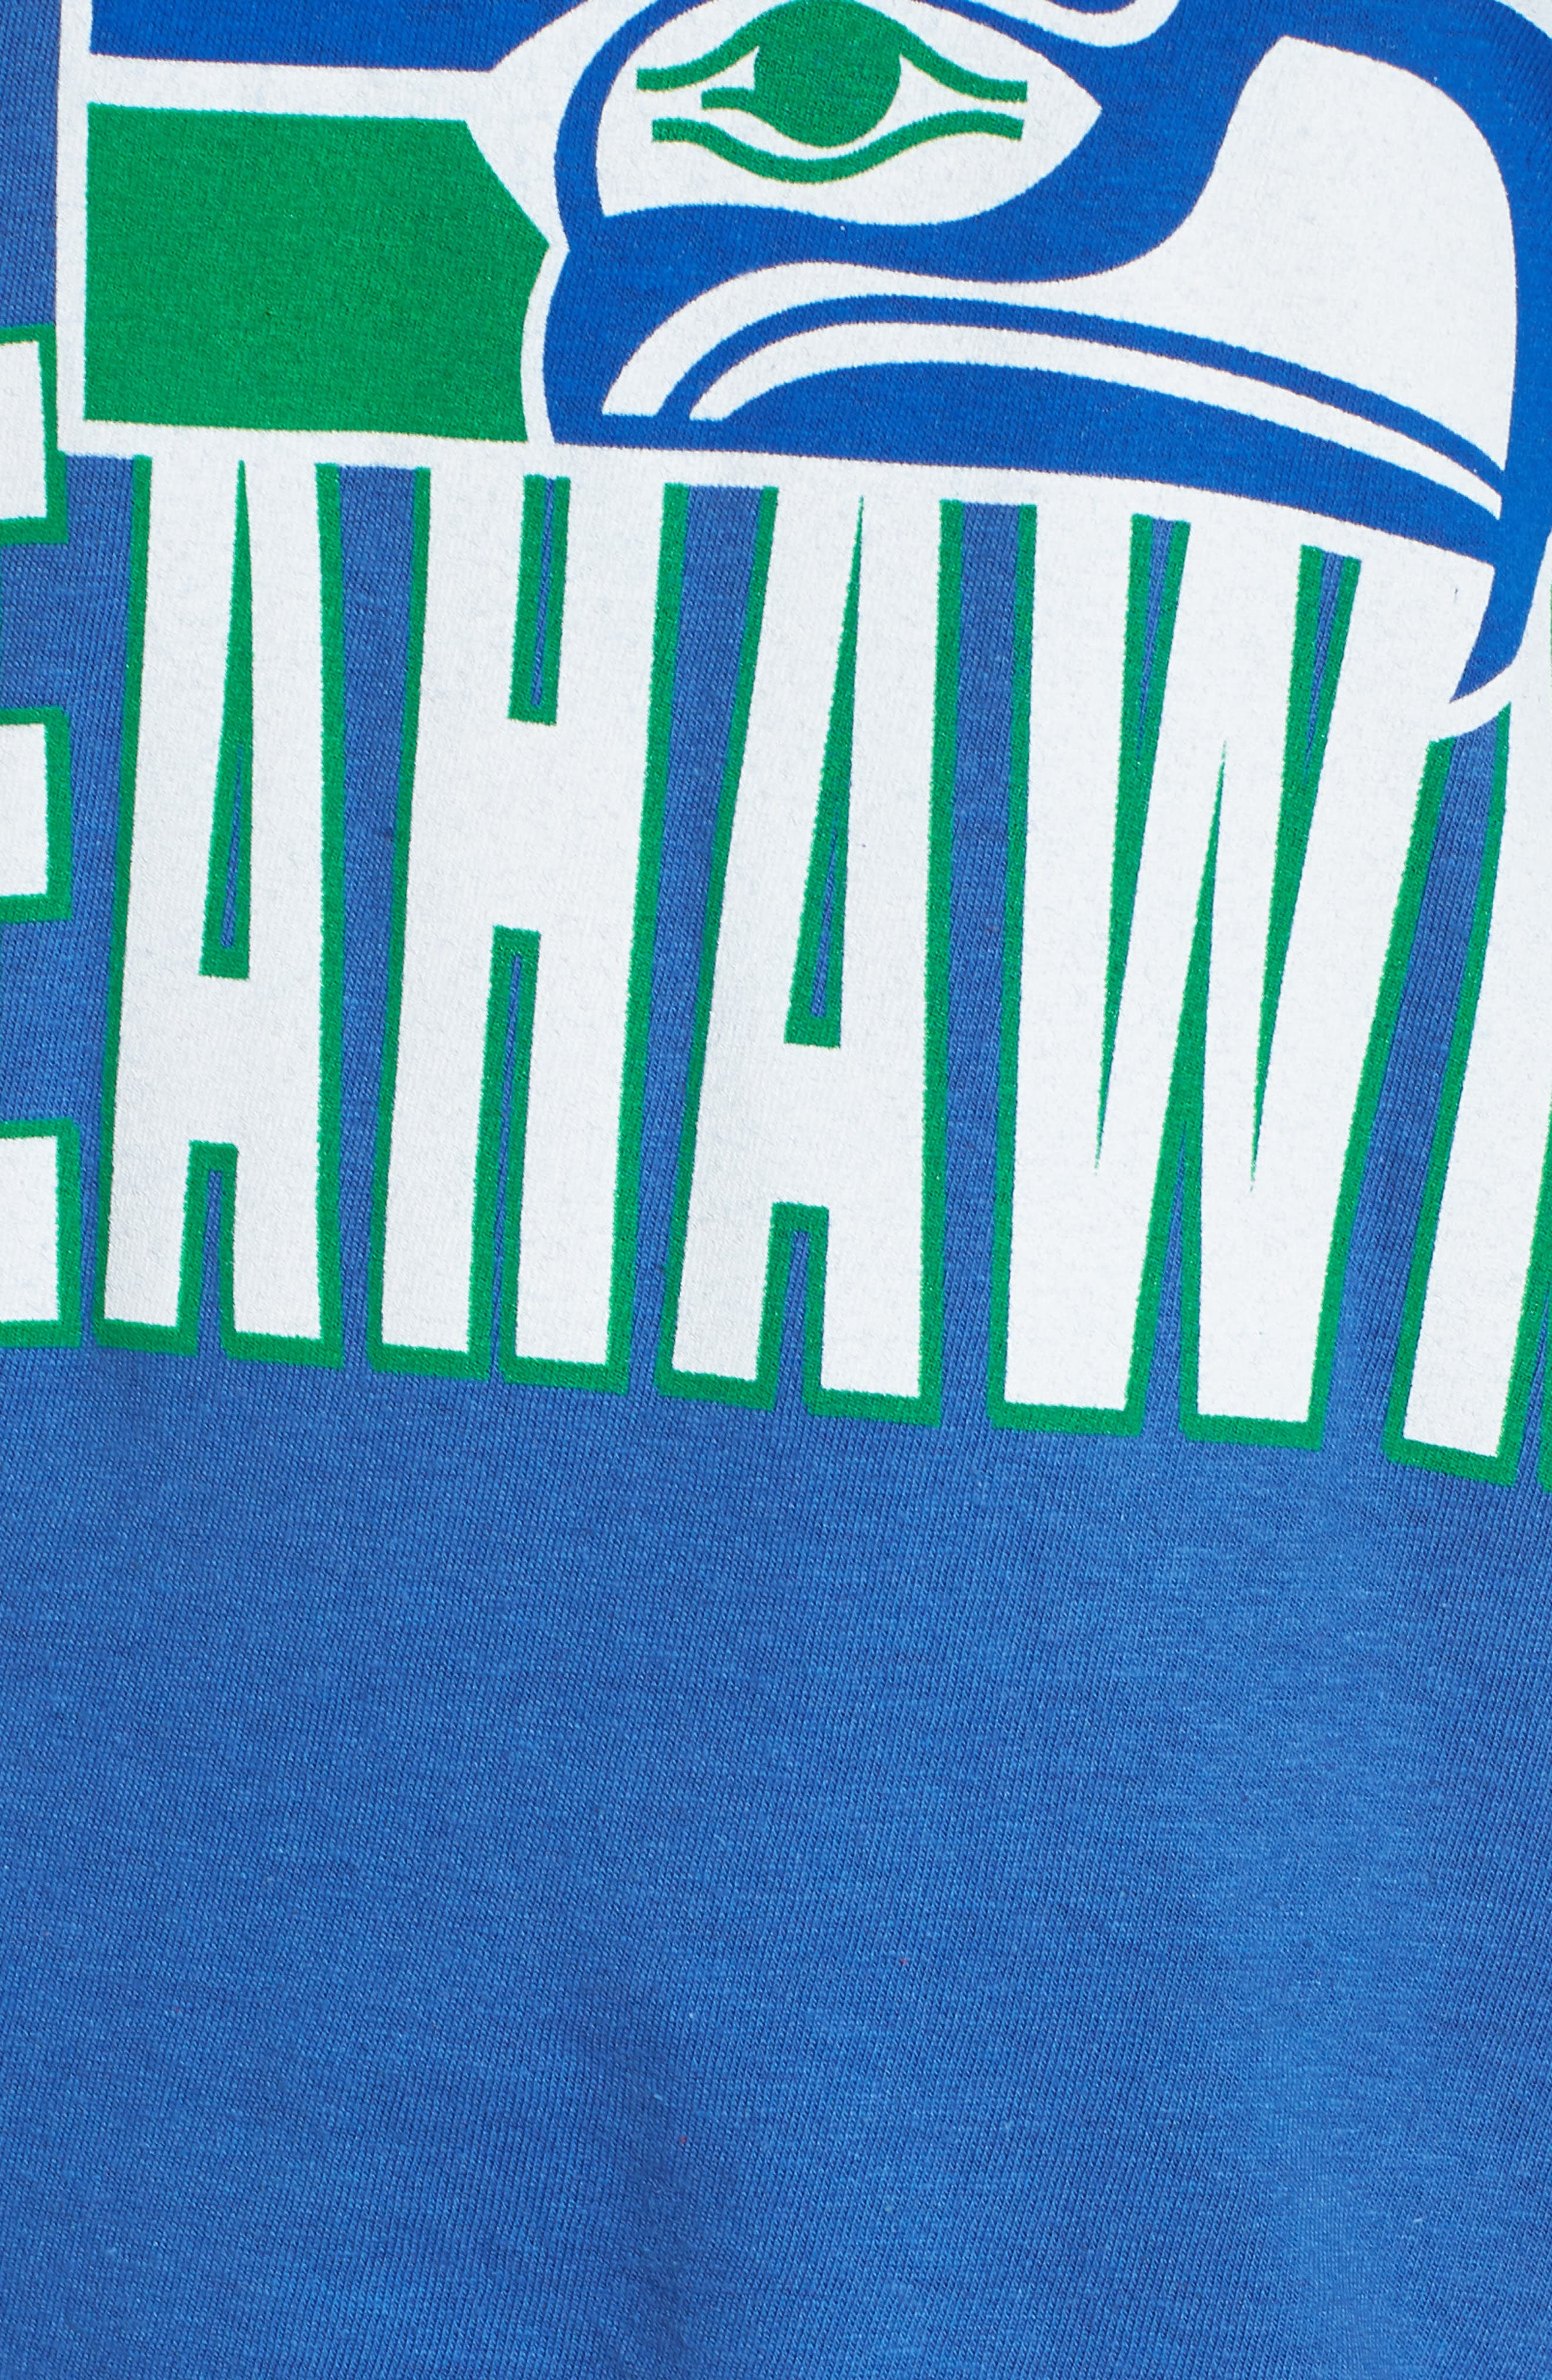 Thowback Top,                             Alternate thumbnail 5, color,                             Seahawks